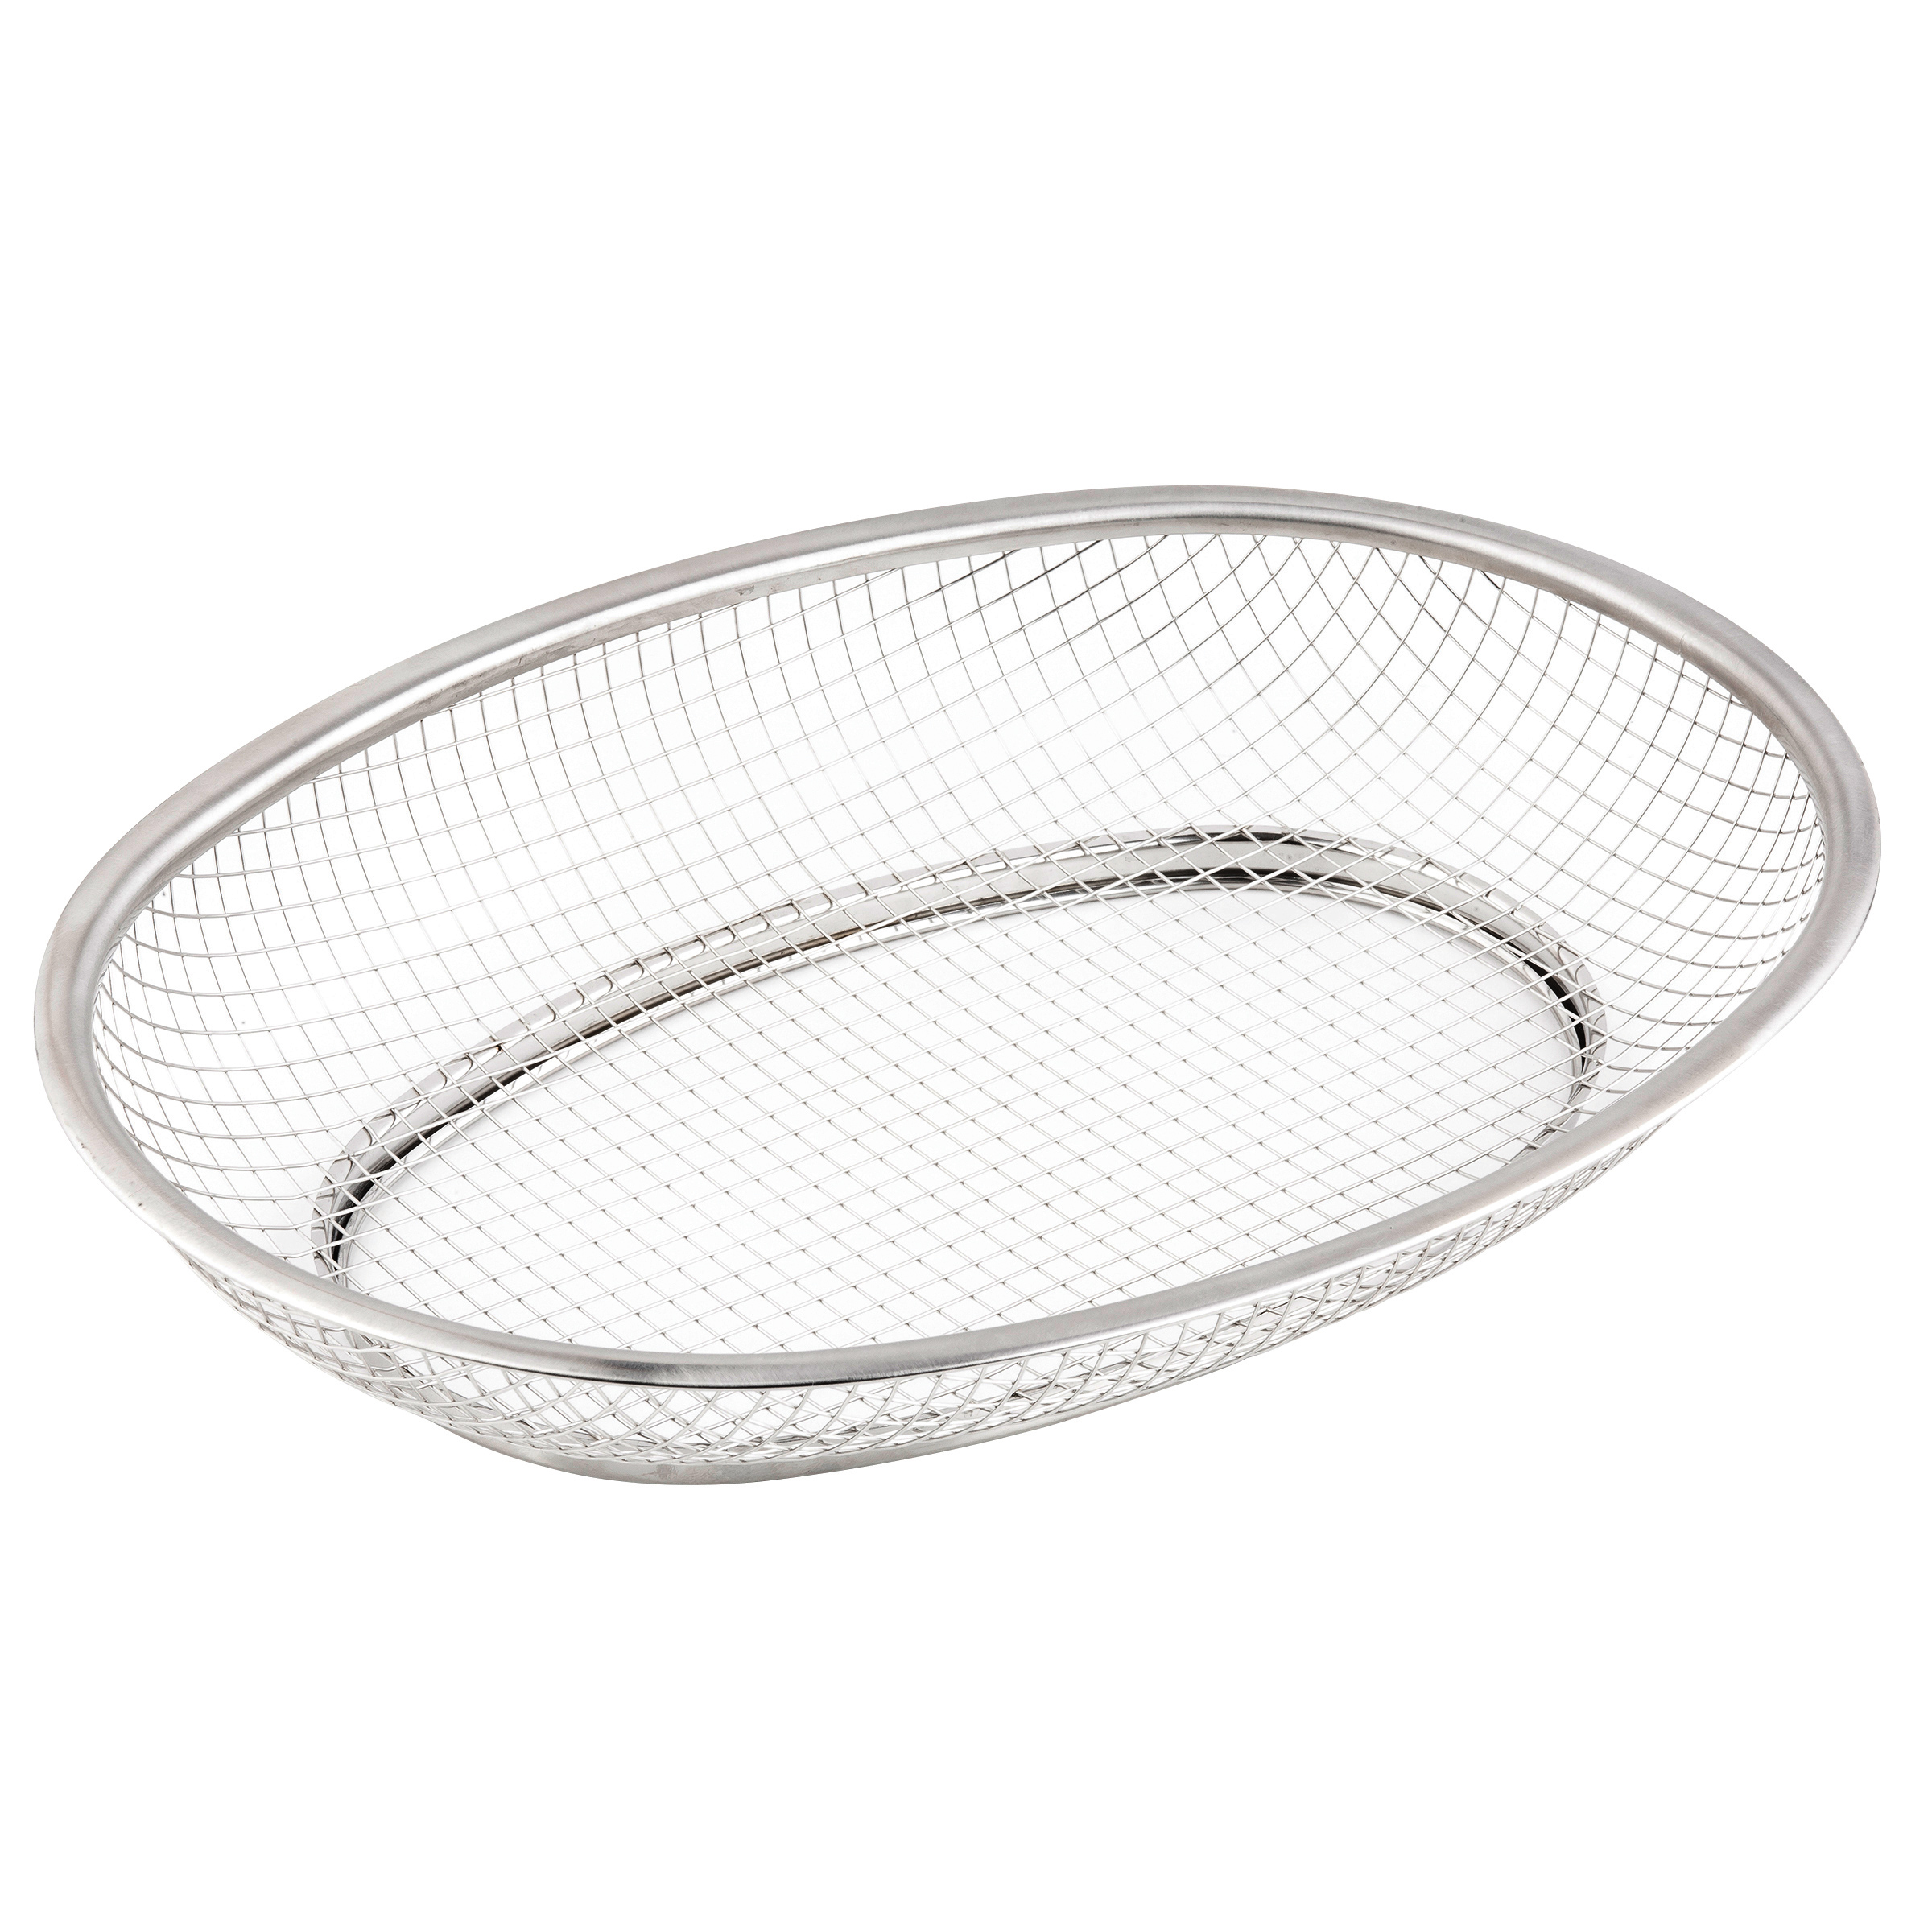 TableCraft Products 123473 basket, tabletop, metal